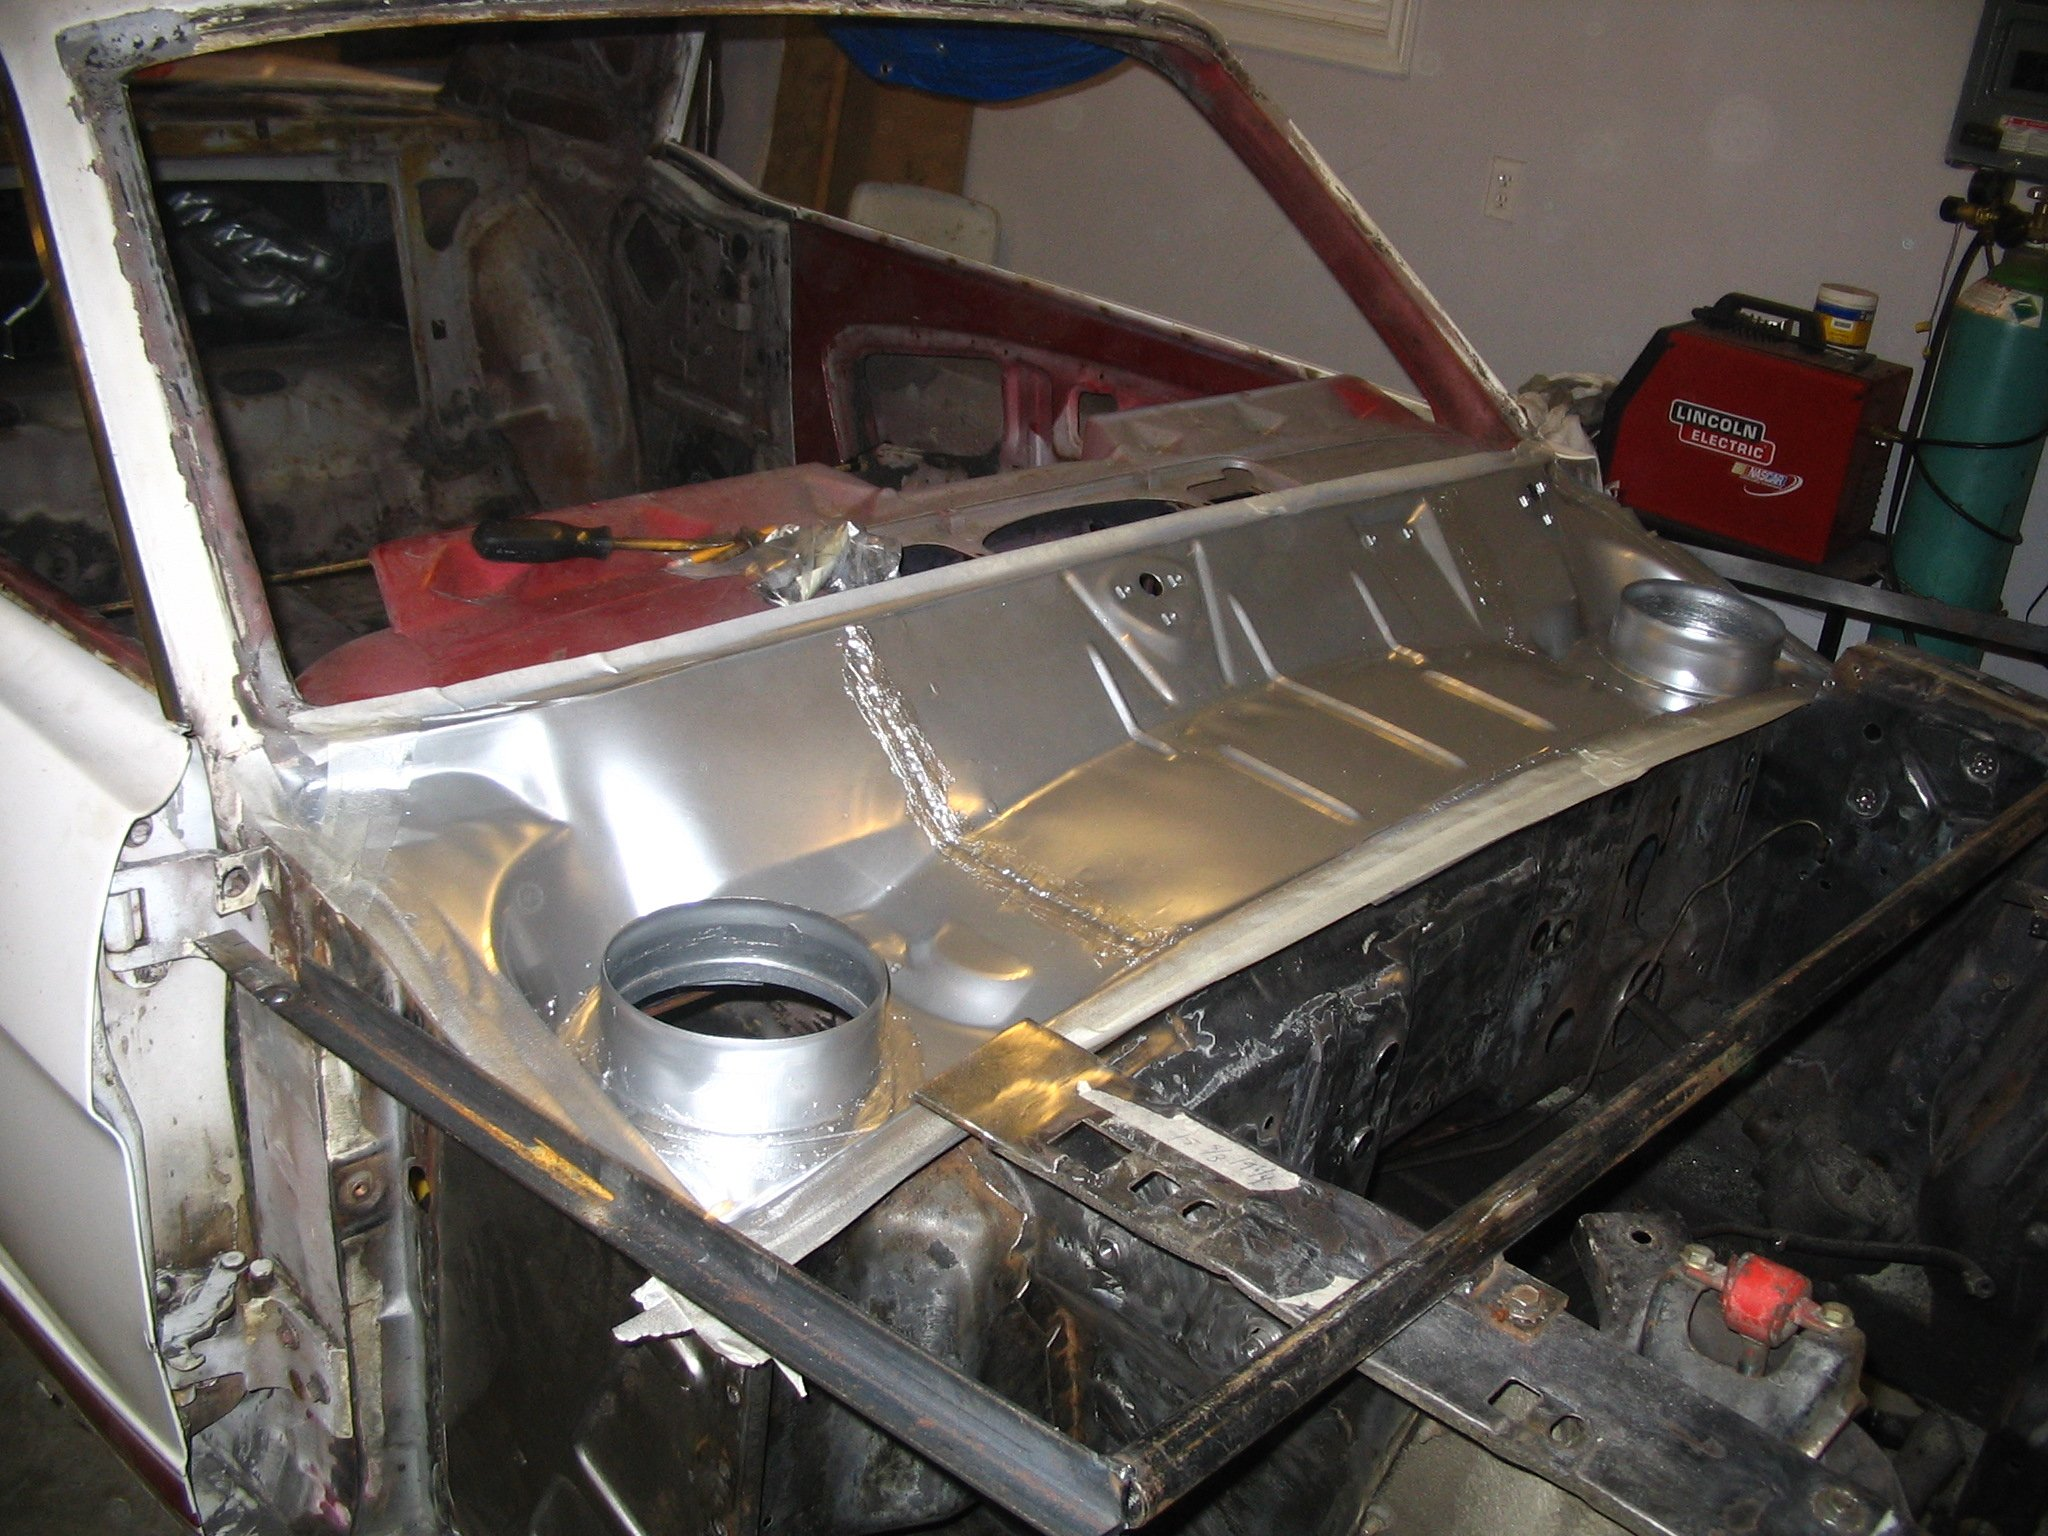 1966 Mustang Cowl Repair Approx Cost Ford Mustang Forum